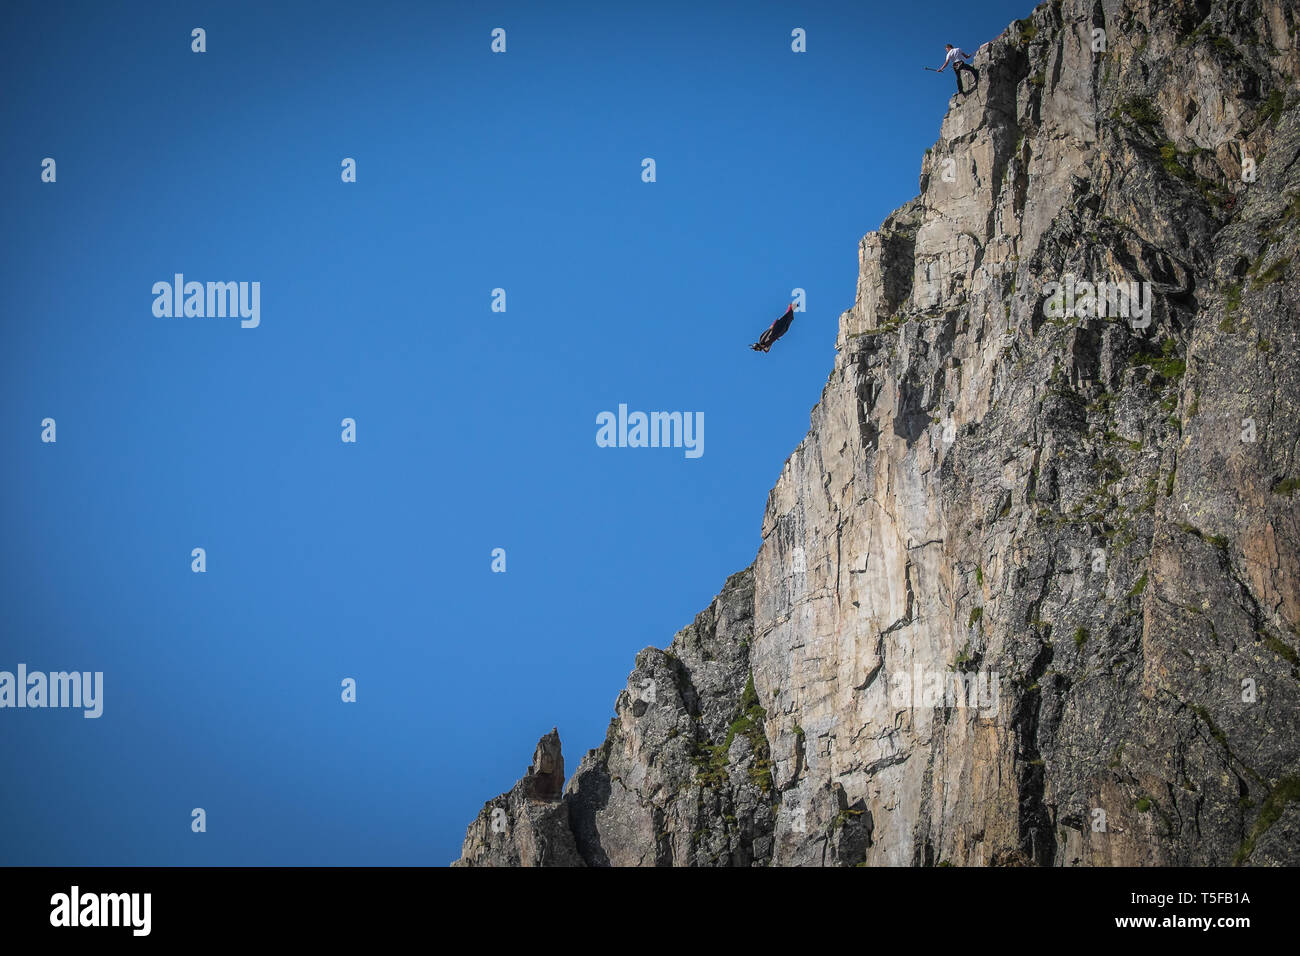 CHAMONIX, FRANCE - JULY 05: A wingsuit jumper jumping from a cliff in brevent, Auvergne-rhône-alpes, Chamonix, France  on July 5, 2015 in Chamonix, France. (Photo by Fred Marie/Art in All of Us/Corbis via Getty Images) - Stock Image